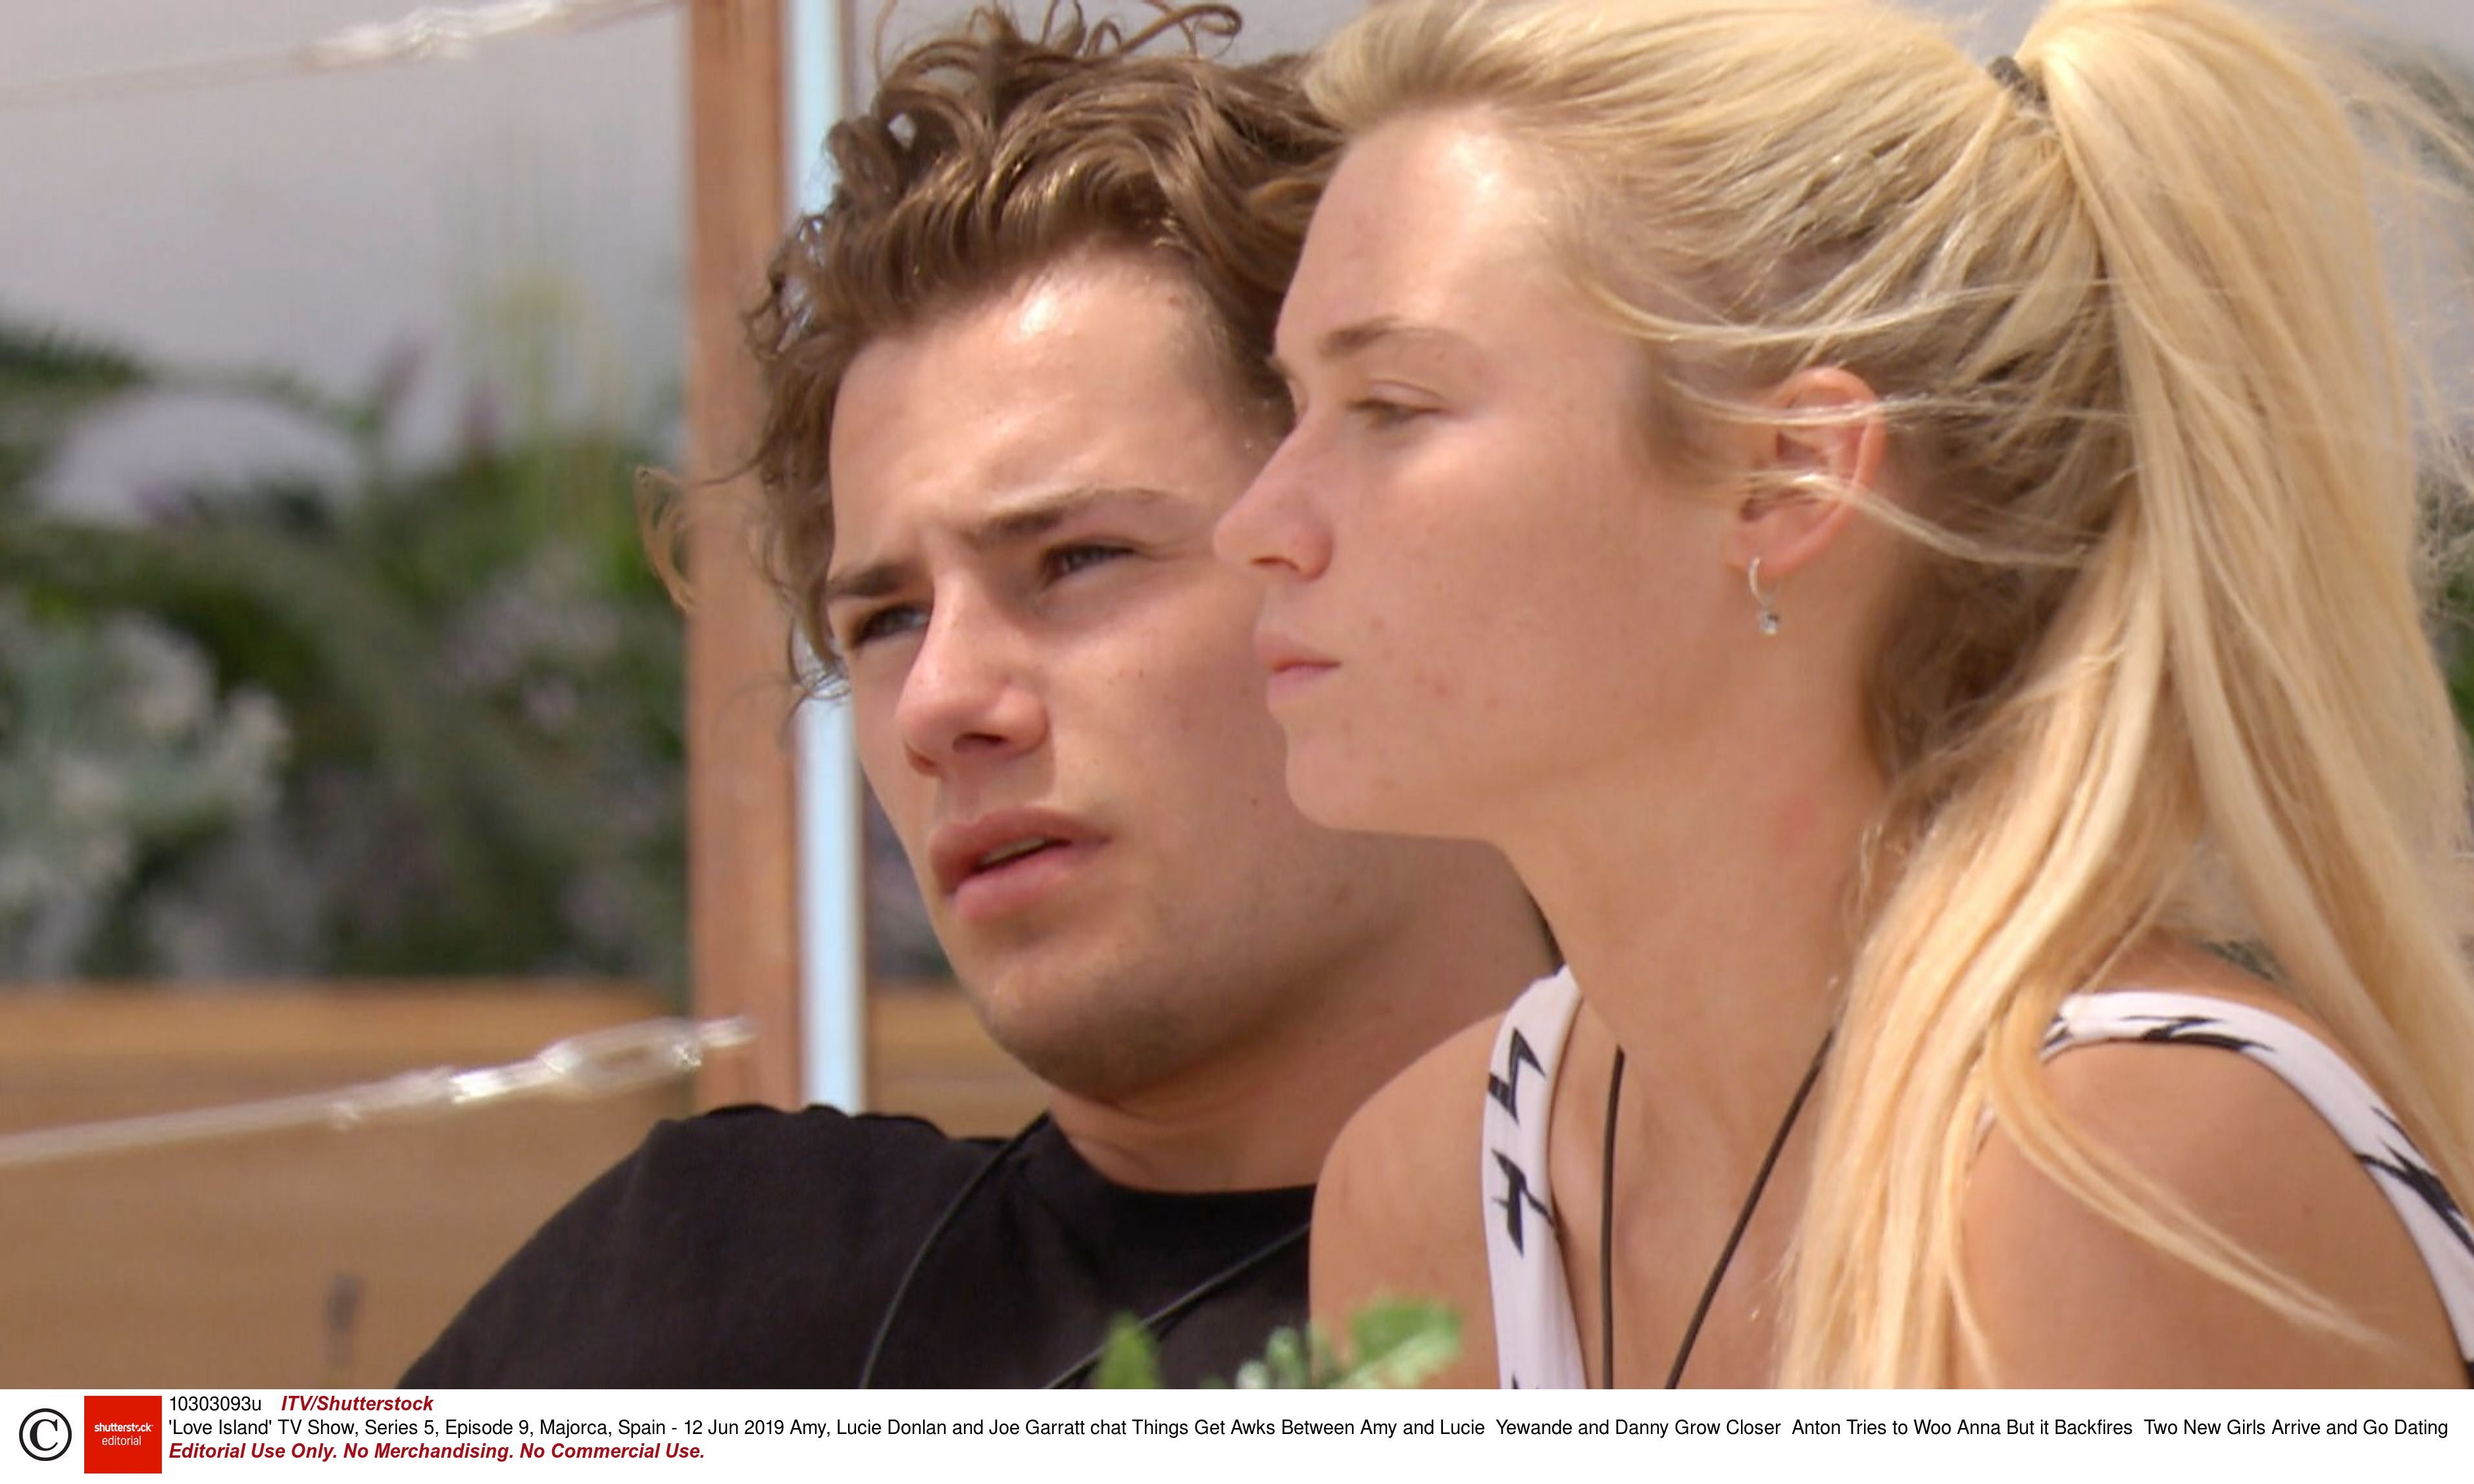 Ofcom has received nearly 800 complaints about Love Island in four days